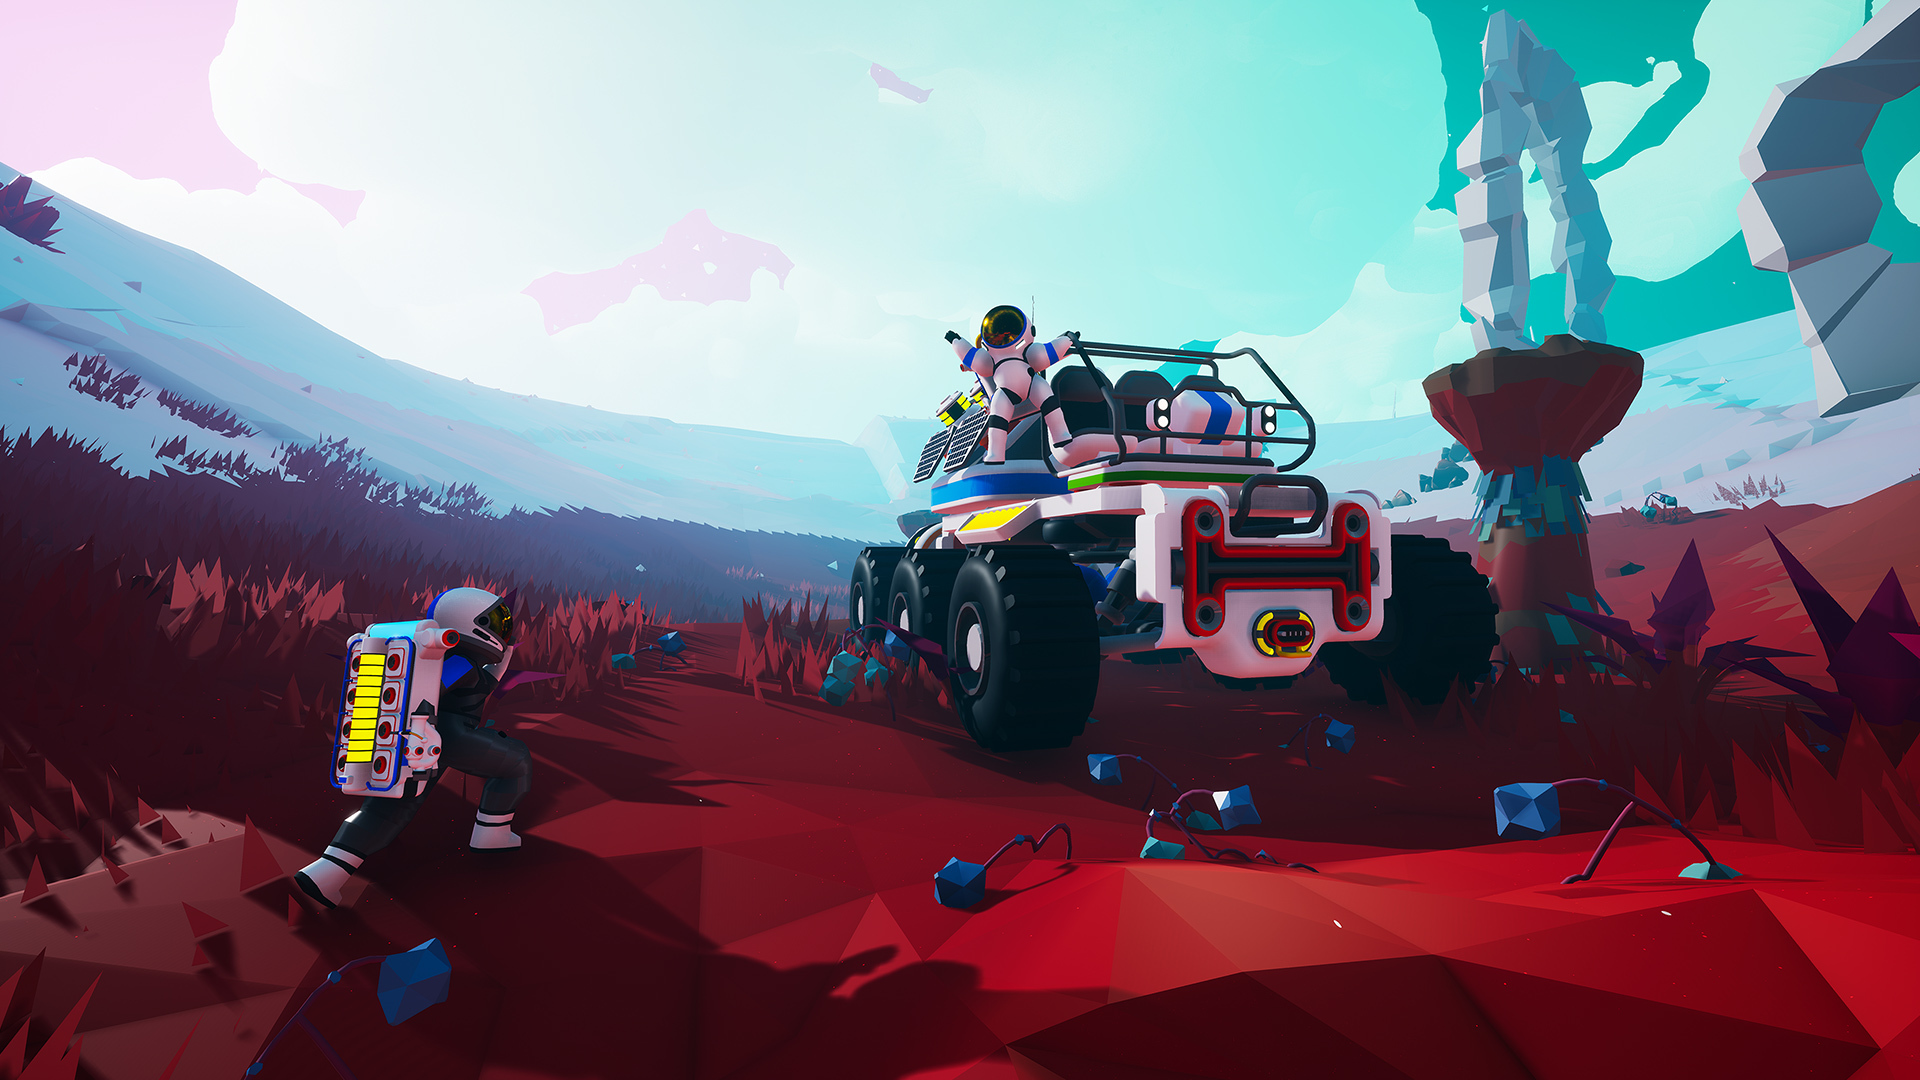 Nominate Astroneer in the Steam Awards!